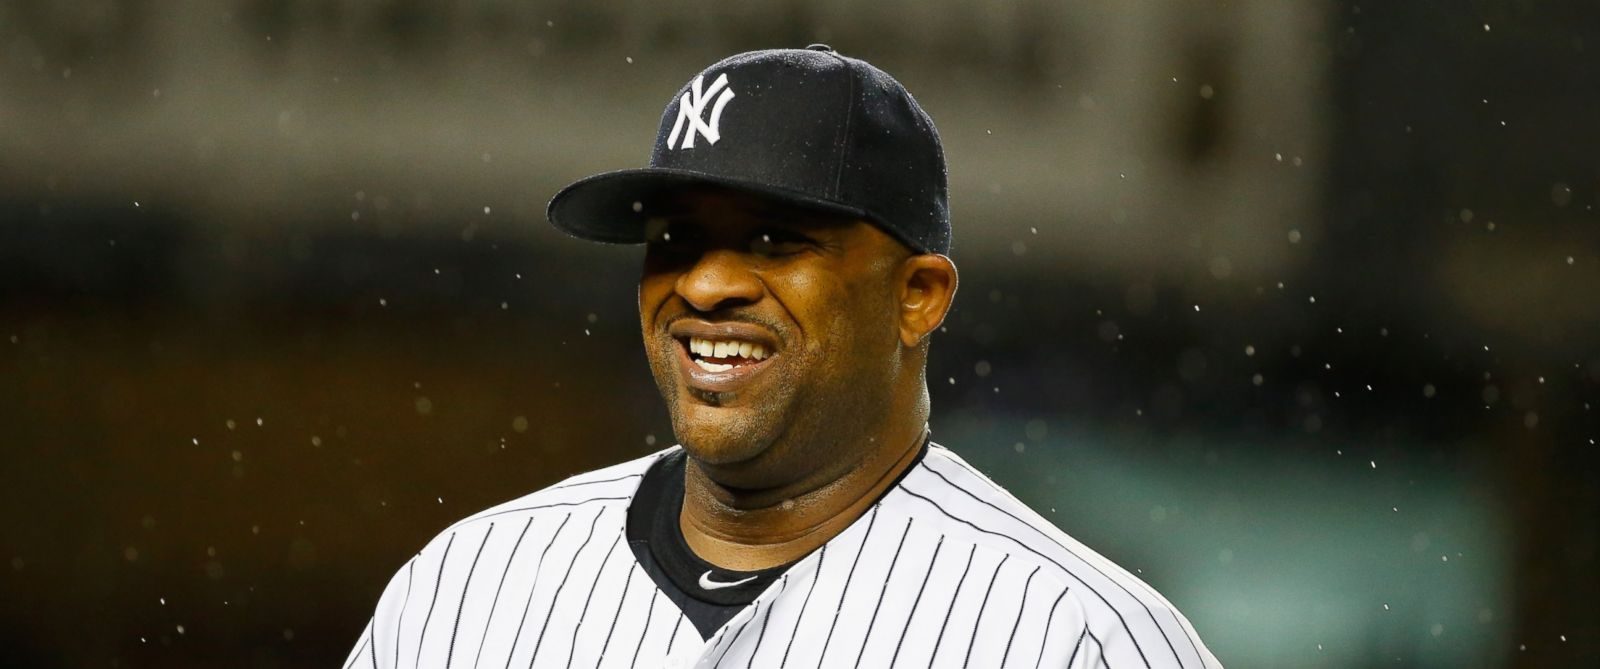 cc sabathia - photo #30